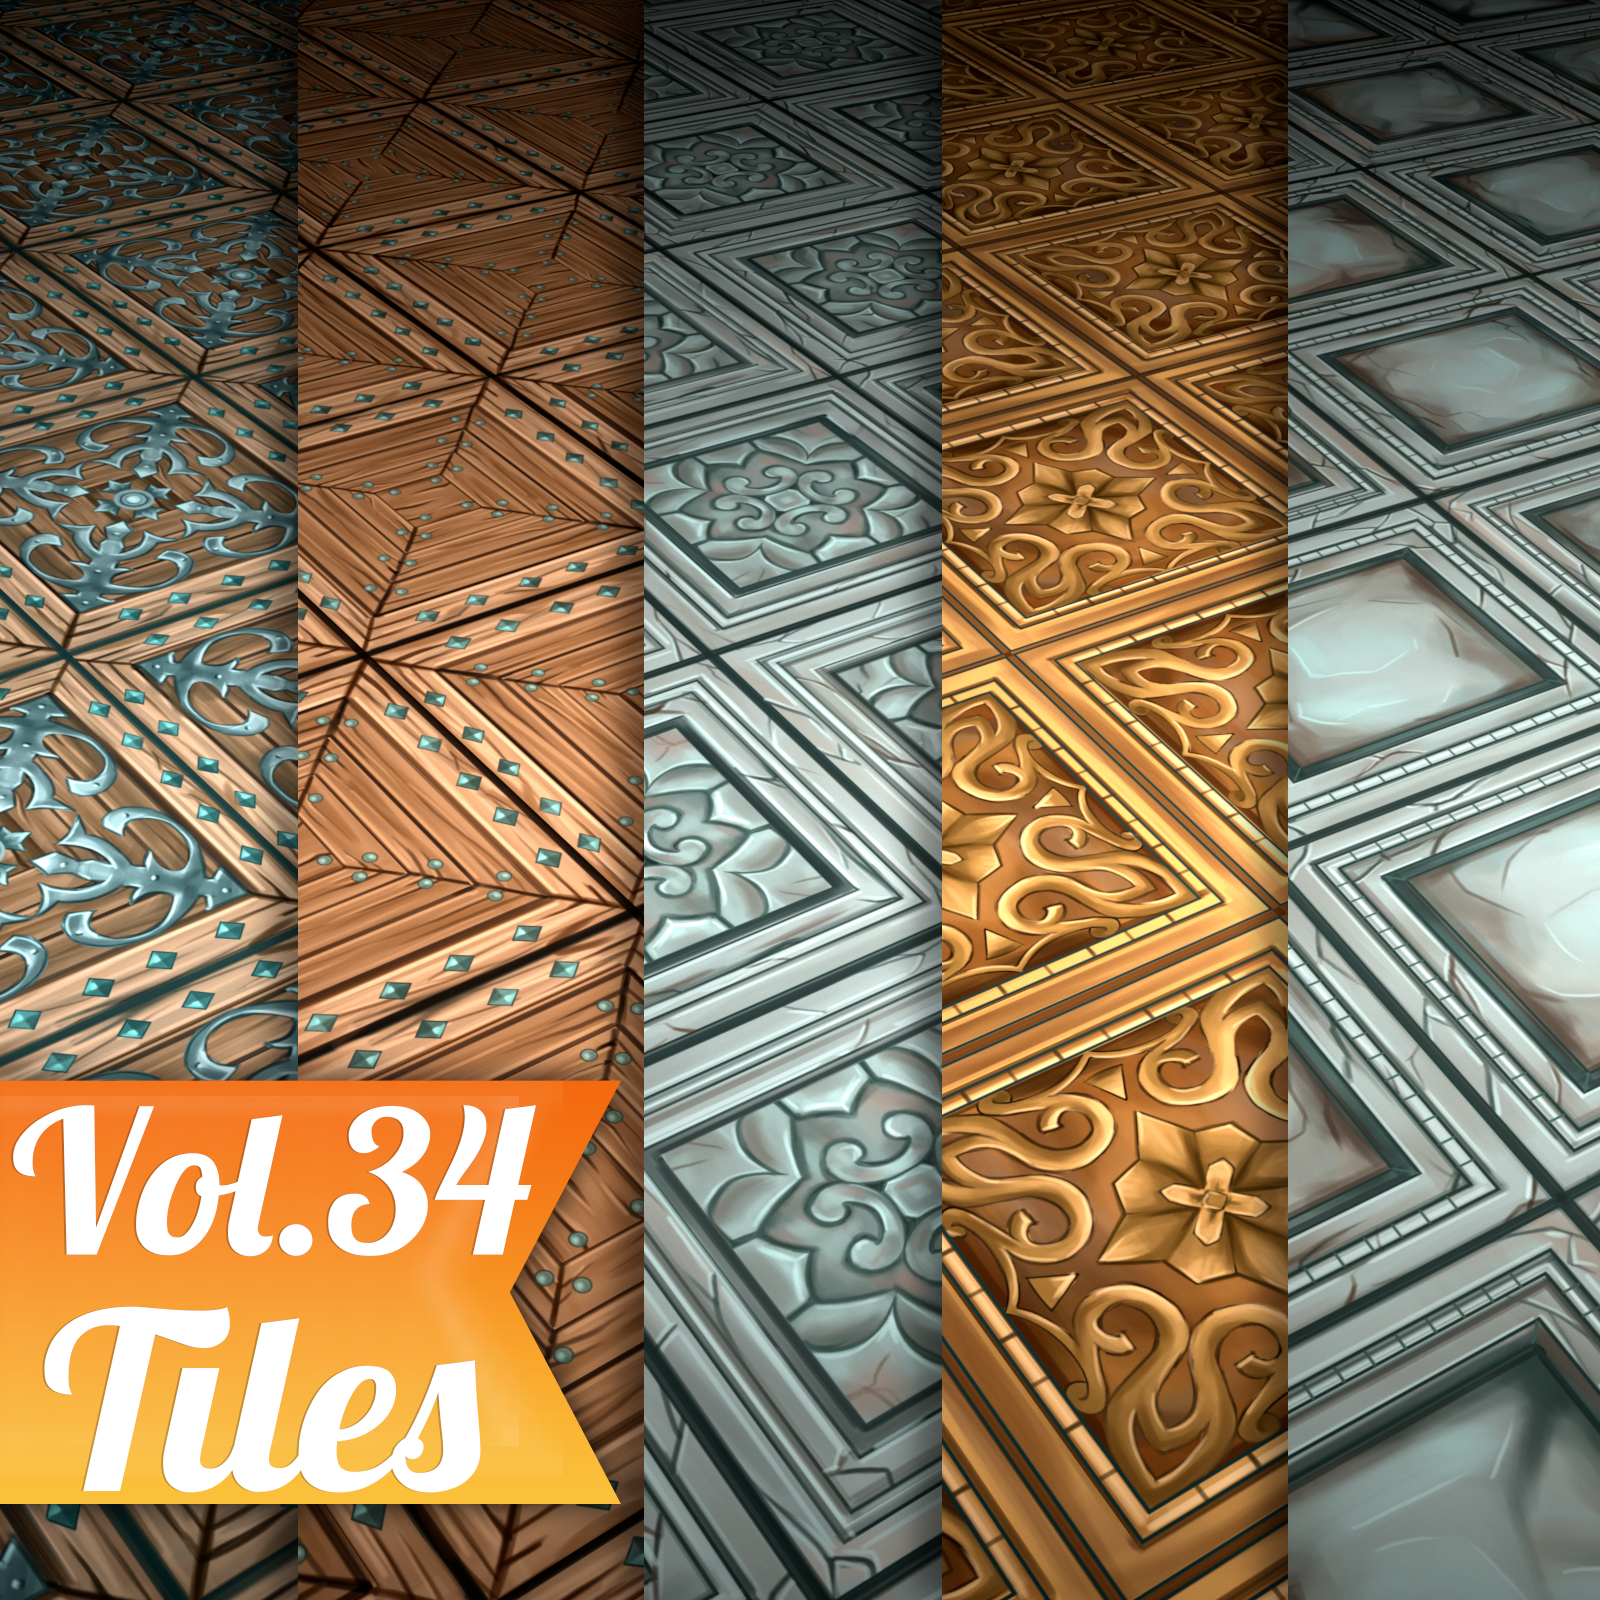 Tiles Vol.34 - Hand Painted Textures - LowlyPoly